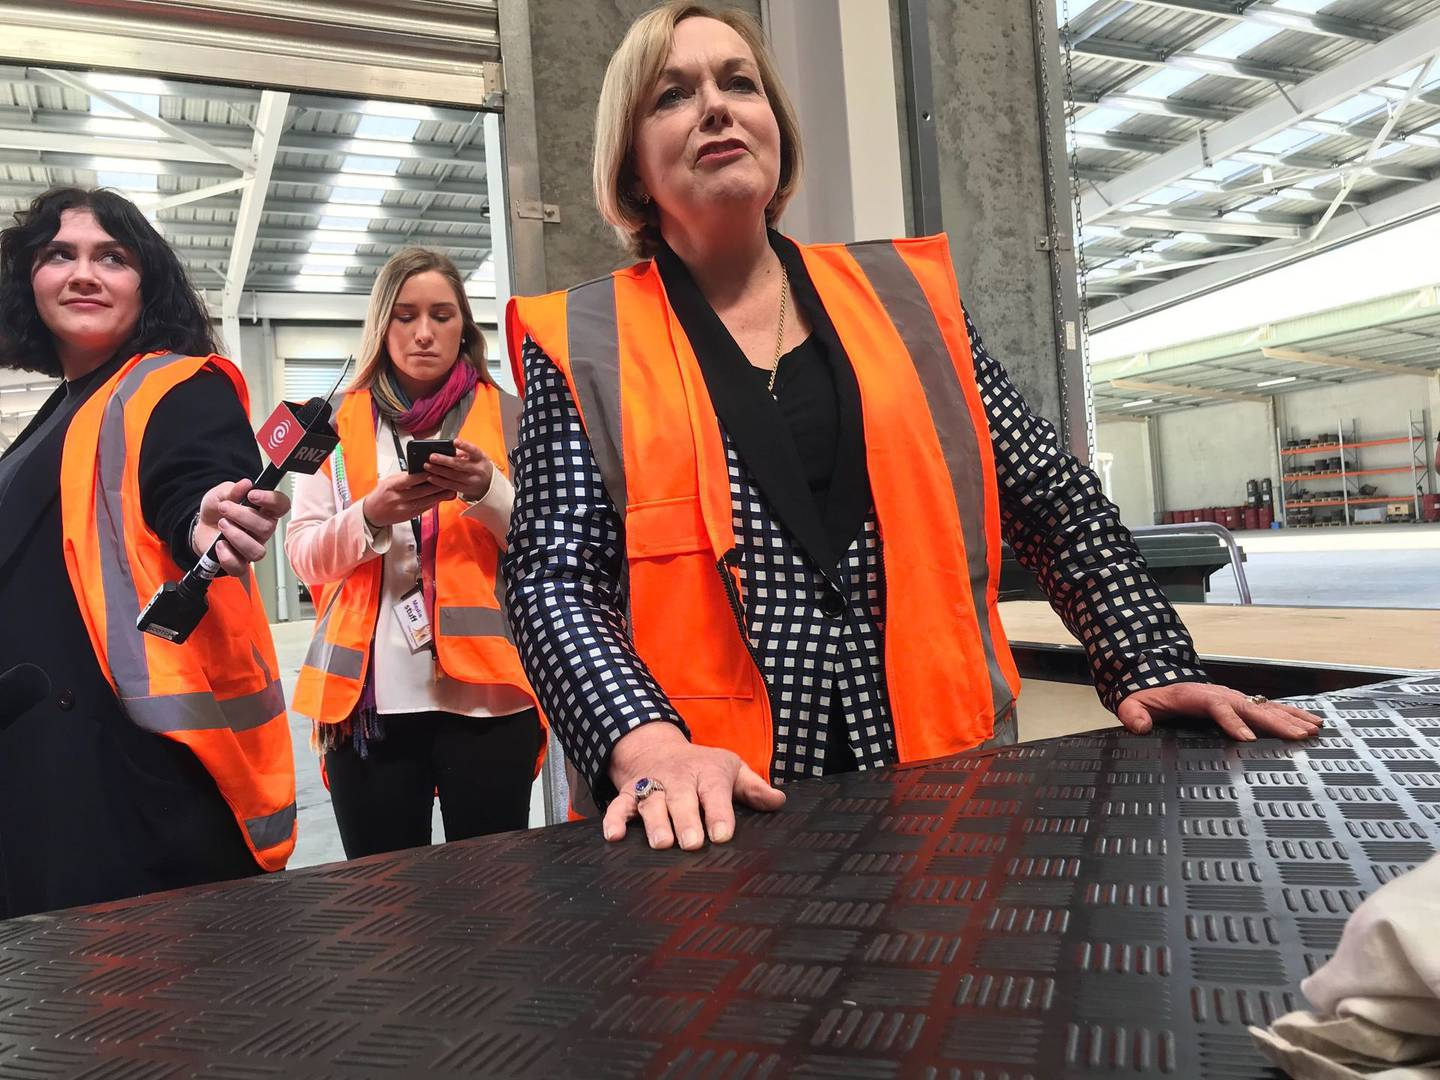 Judith Collins at a business visit in Matamata. Photo: NZ Herald